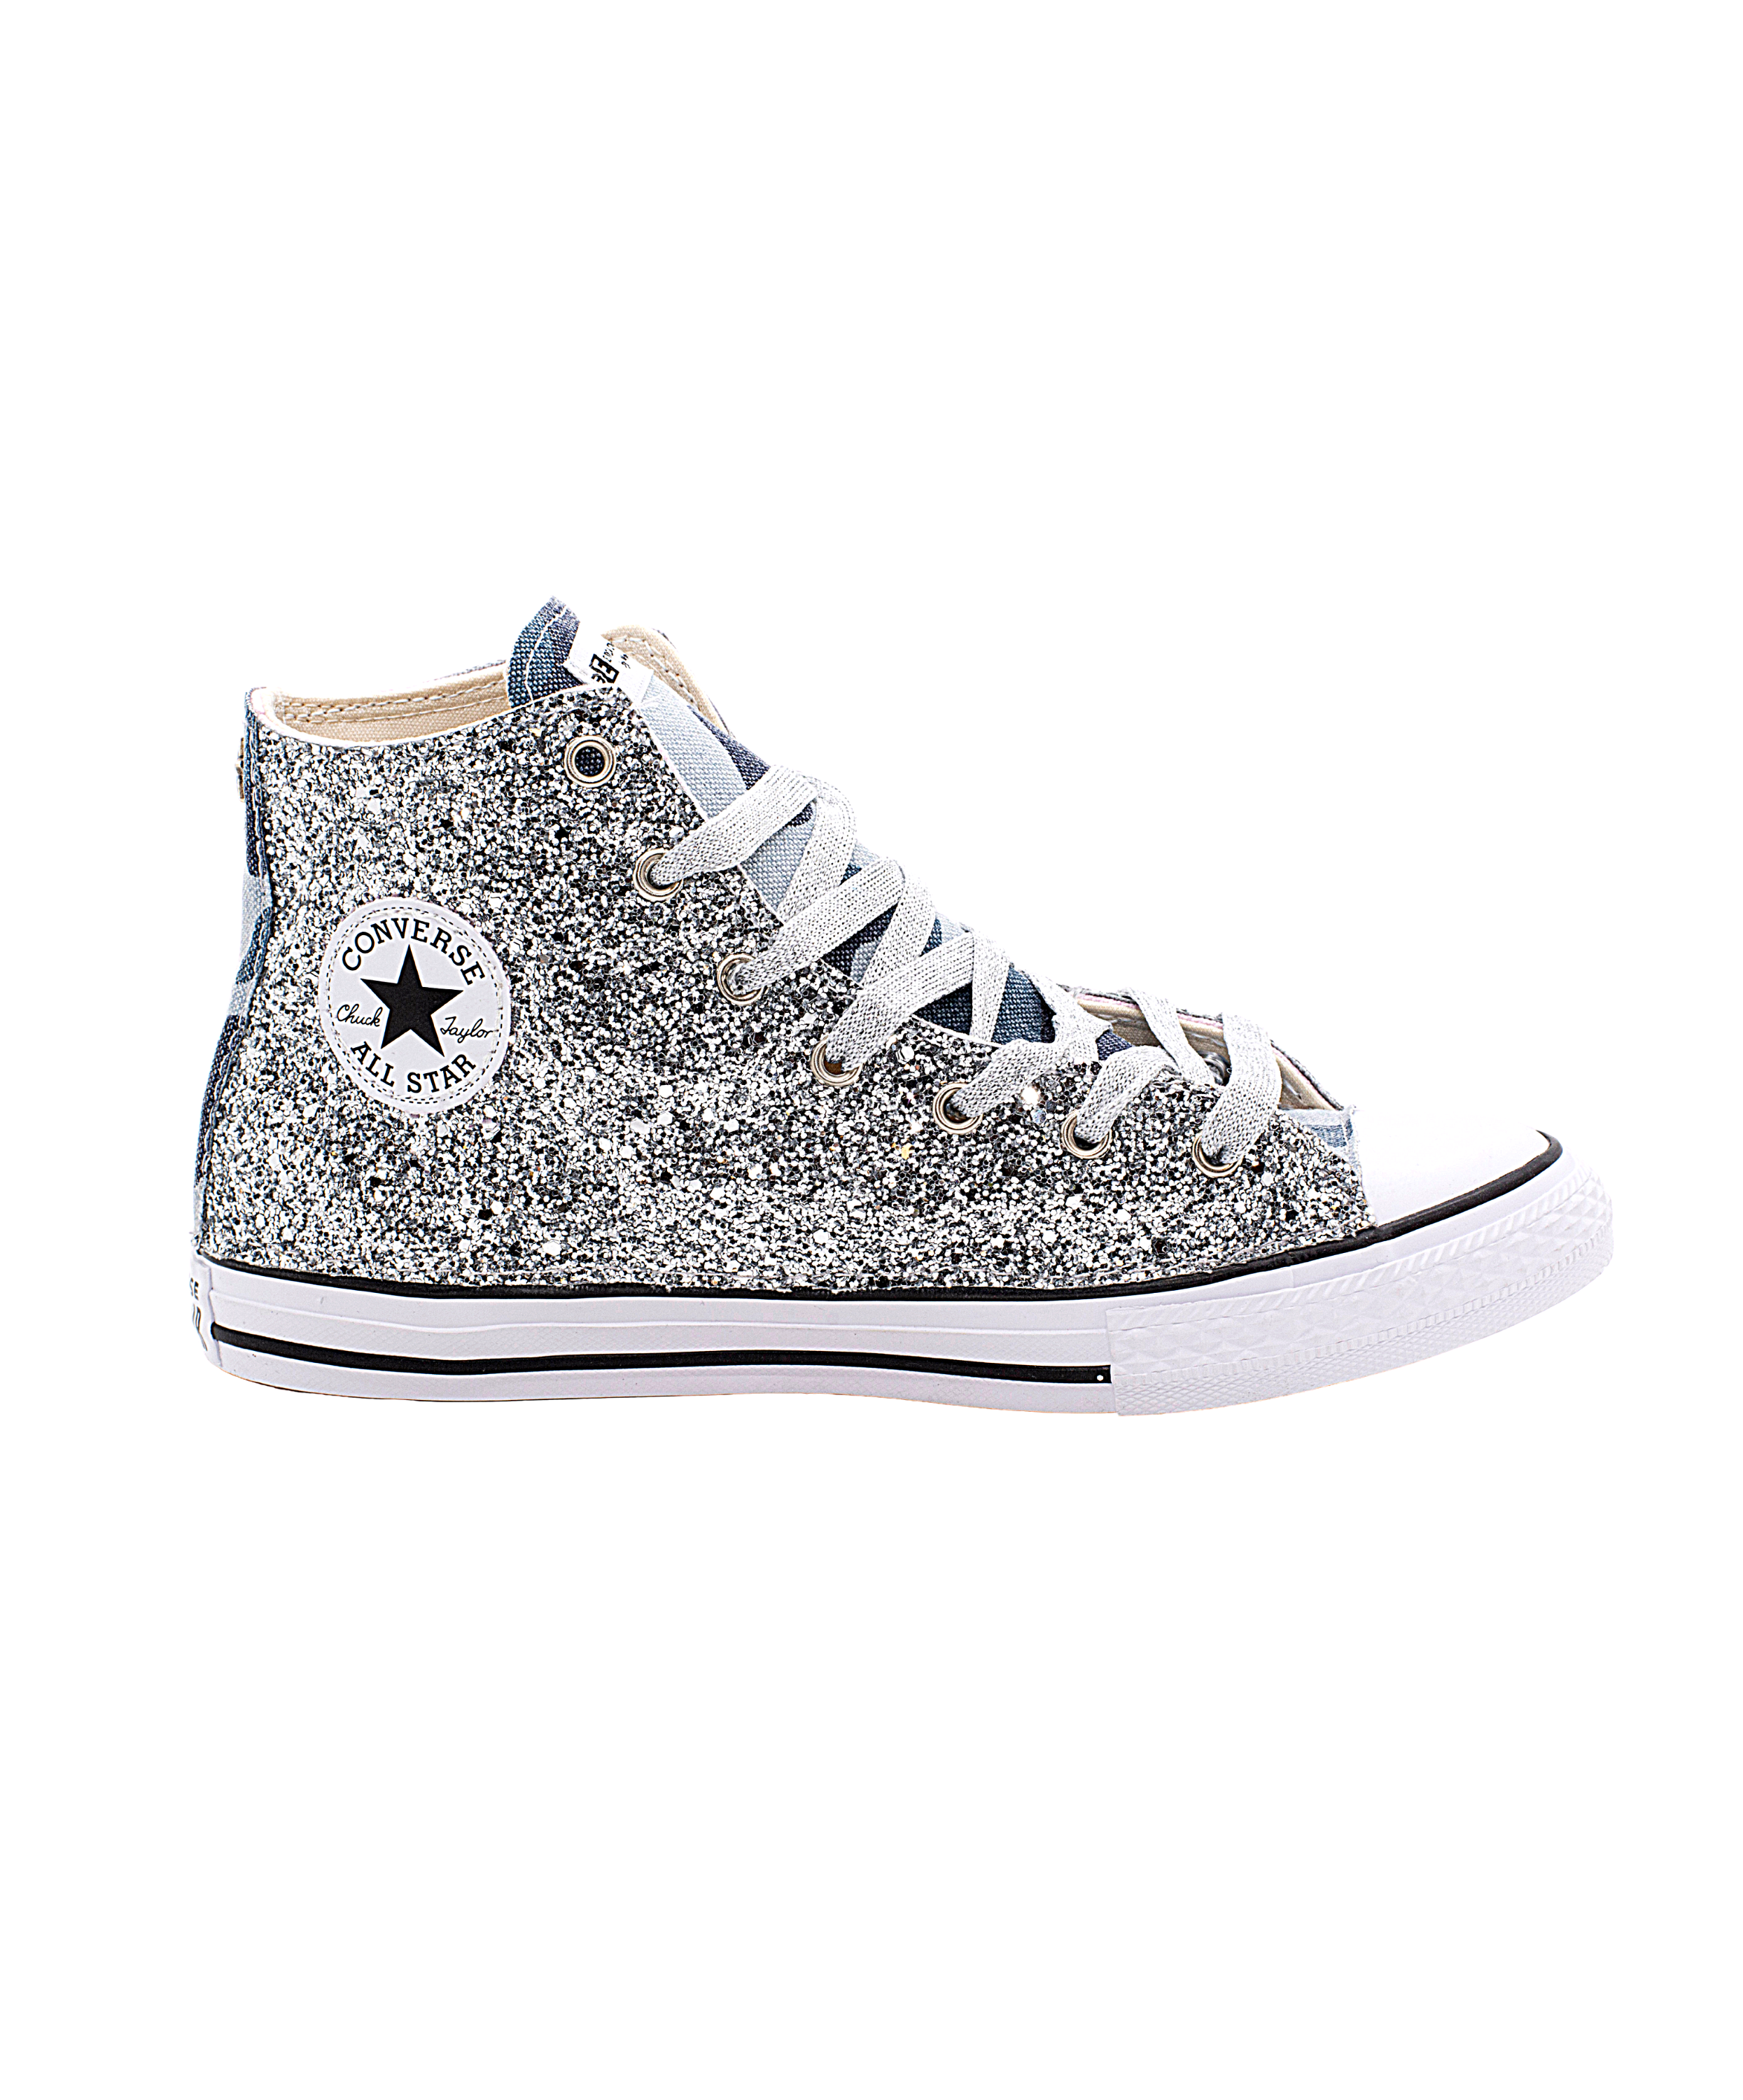 EticaEstetica Custom Sneaker Converse All Star Top Grigia Donna Glitter